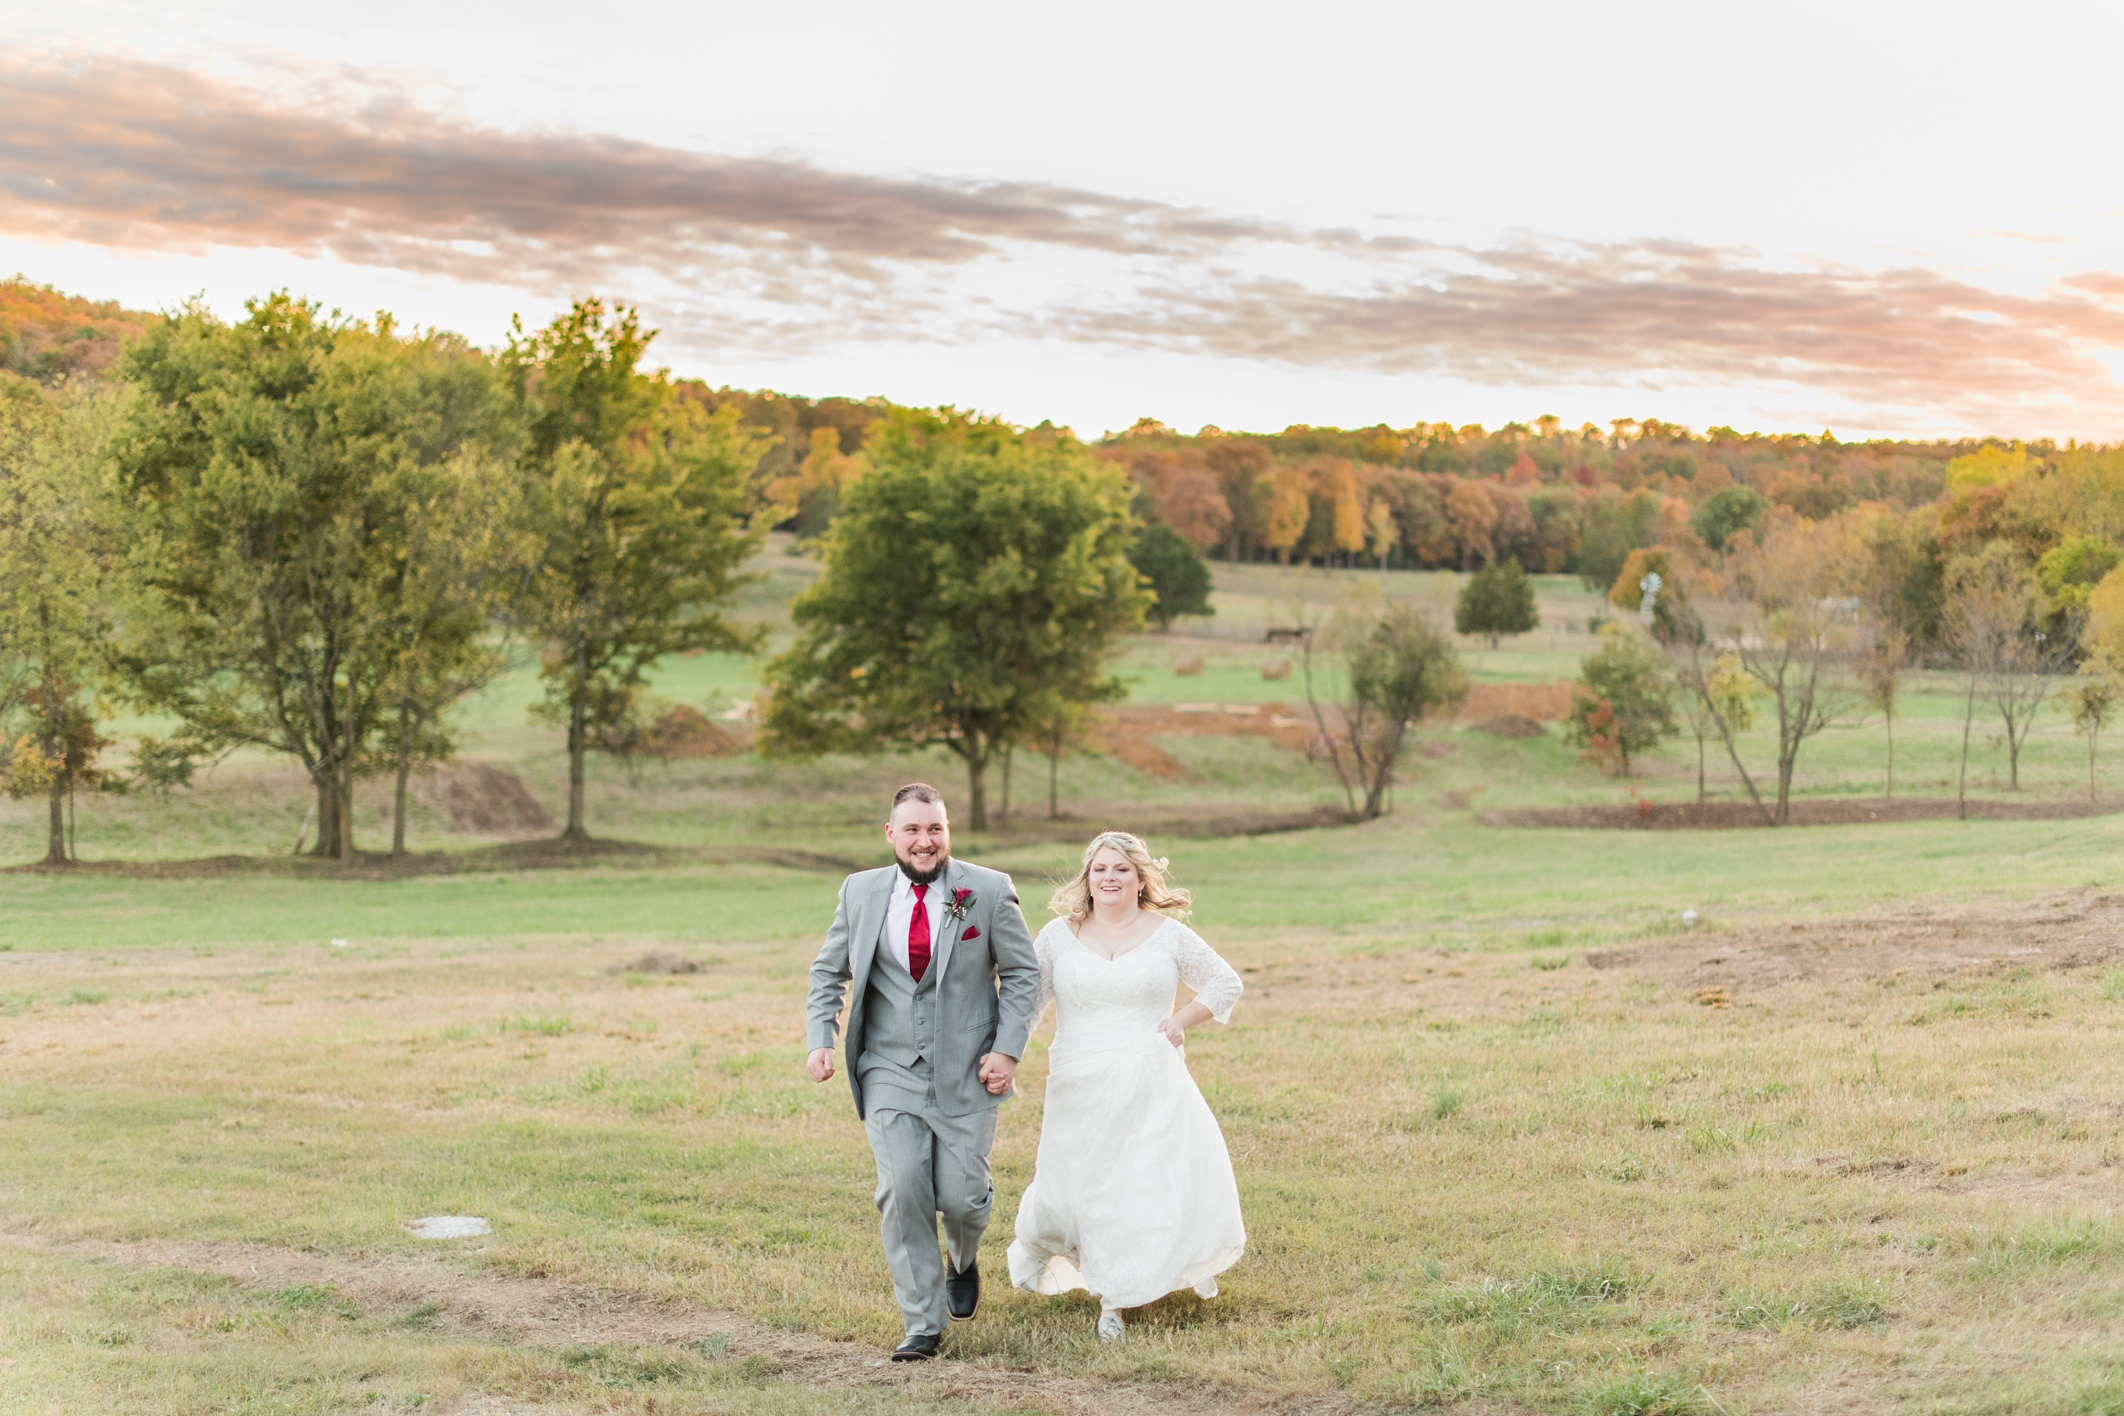 Jordan + Kelly Wedding at Sassafras Springs Vineyard in Springdale, AR